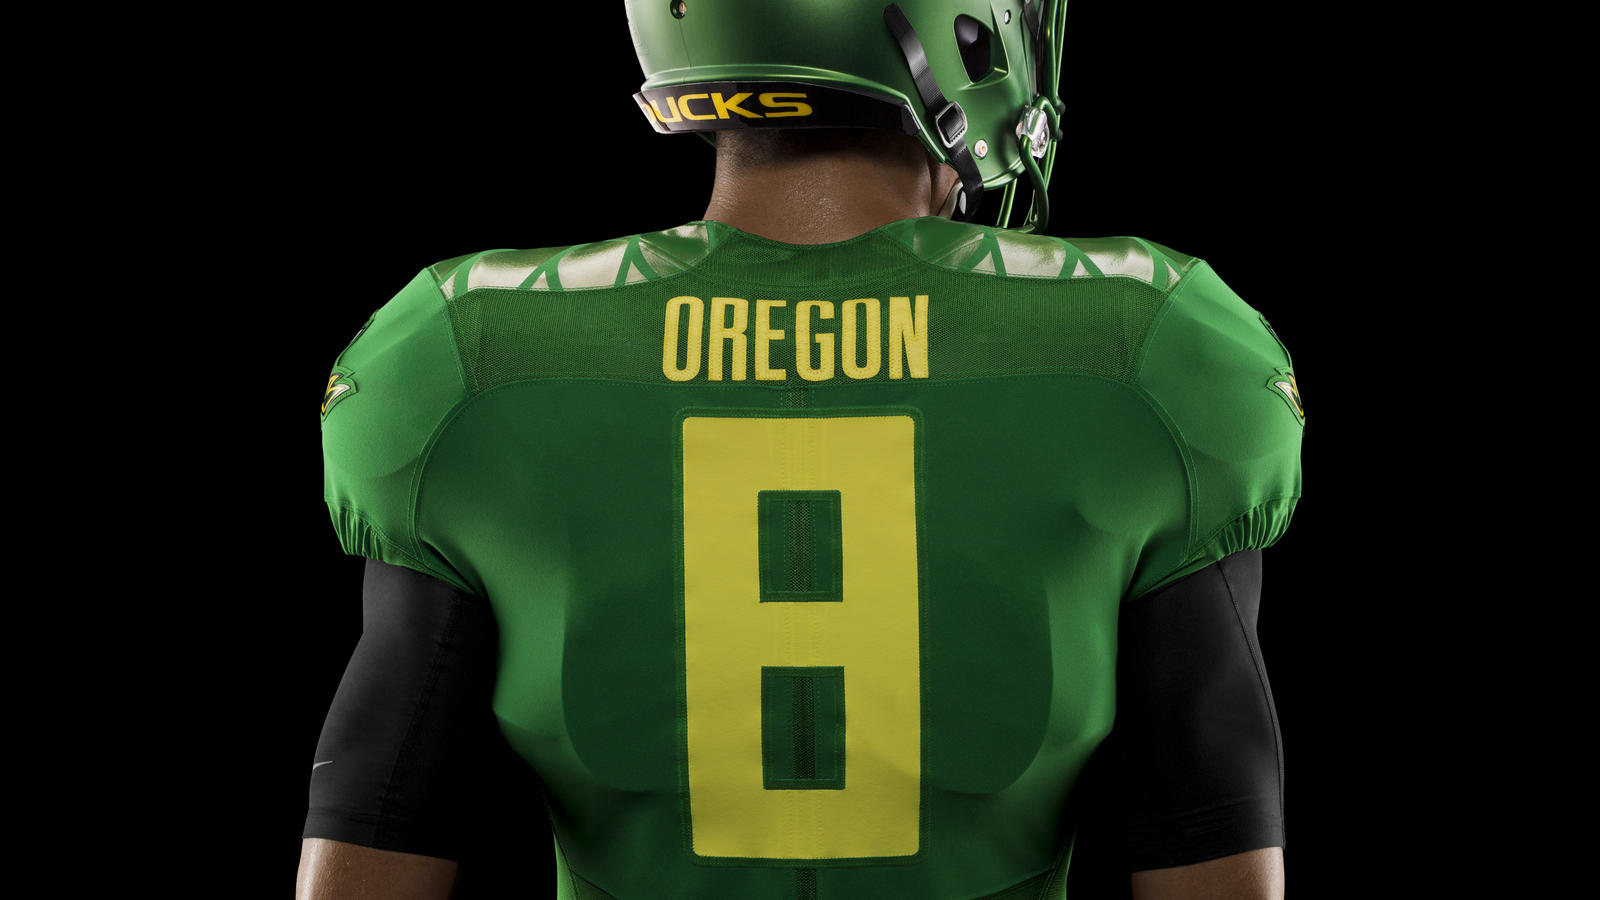 44853_253529_01a_HO14_NFB_NCAA_Oregon_Details_576_crop_1